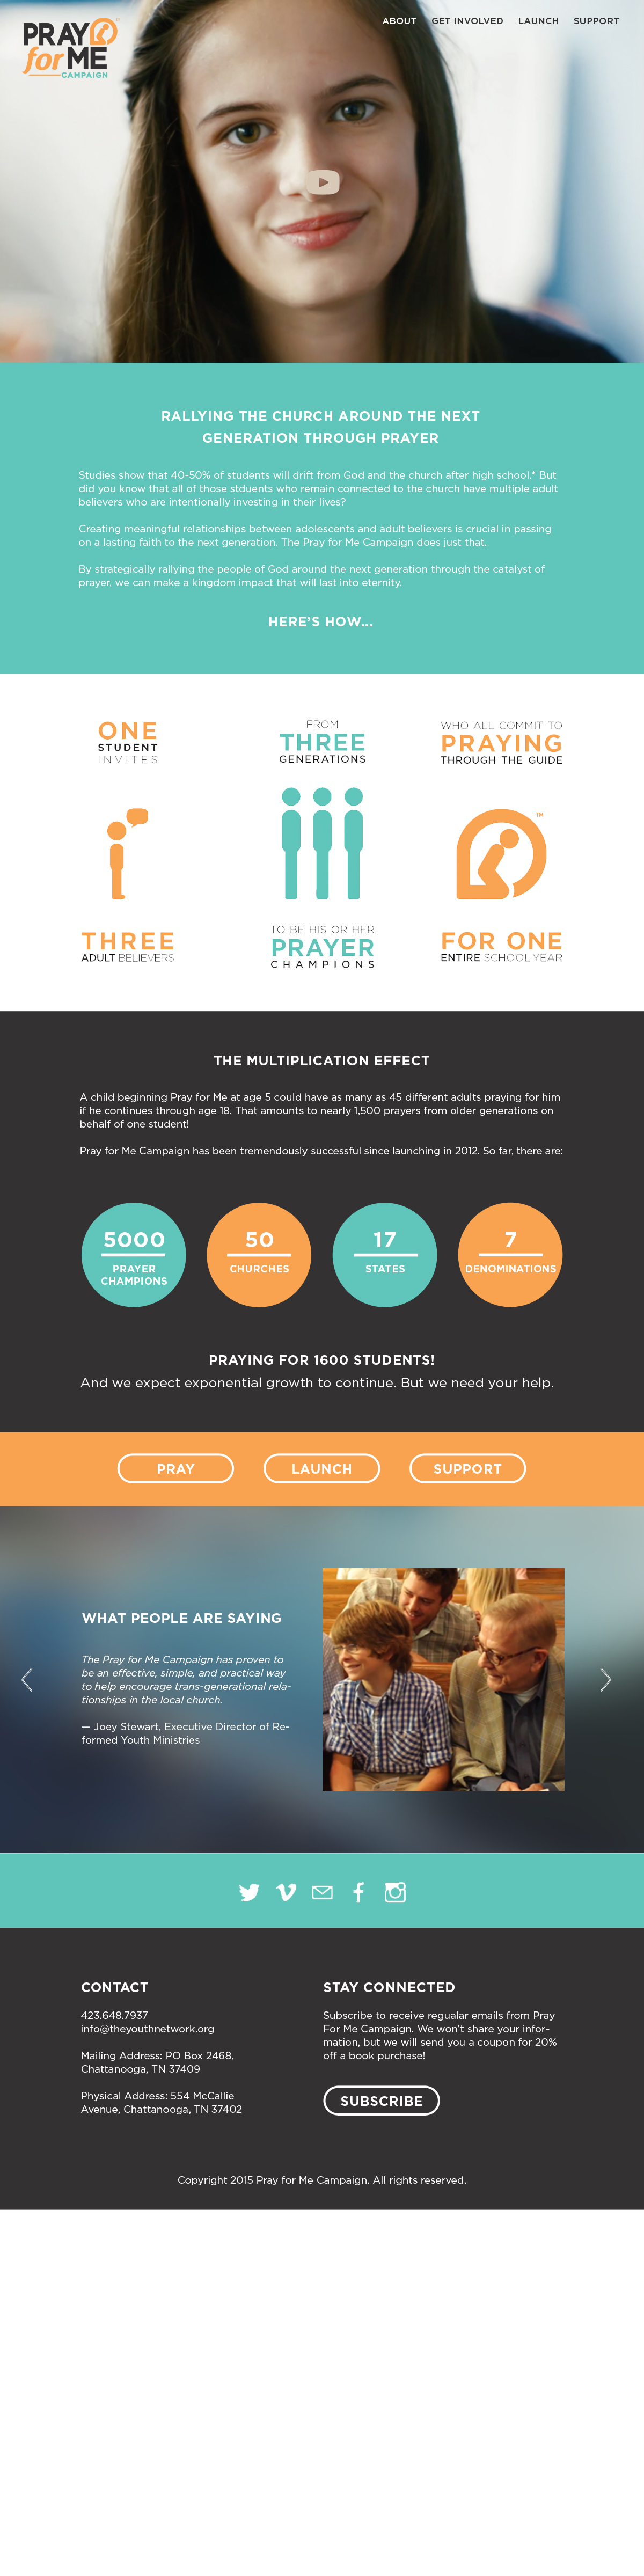 Website Home Page Mock-up 1.jpg